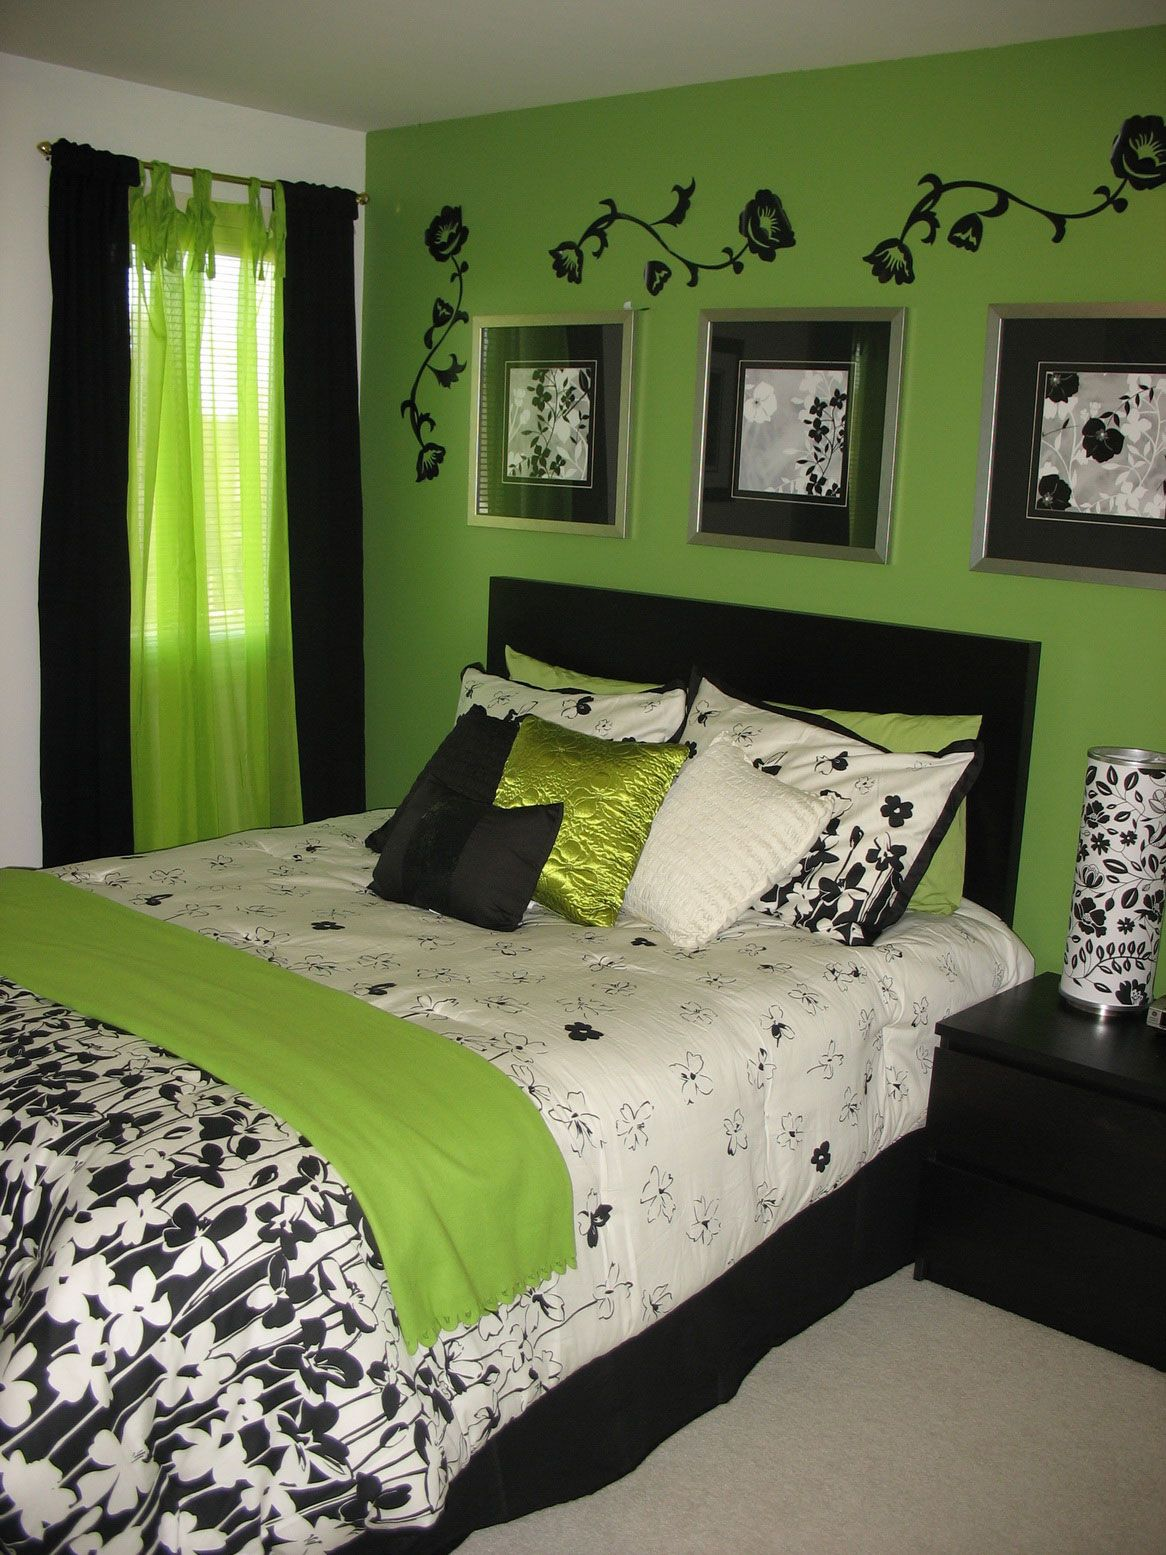 Green wall decor for bedrooms